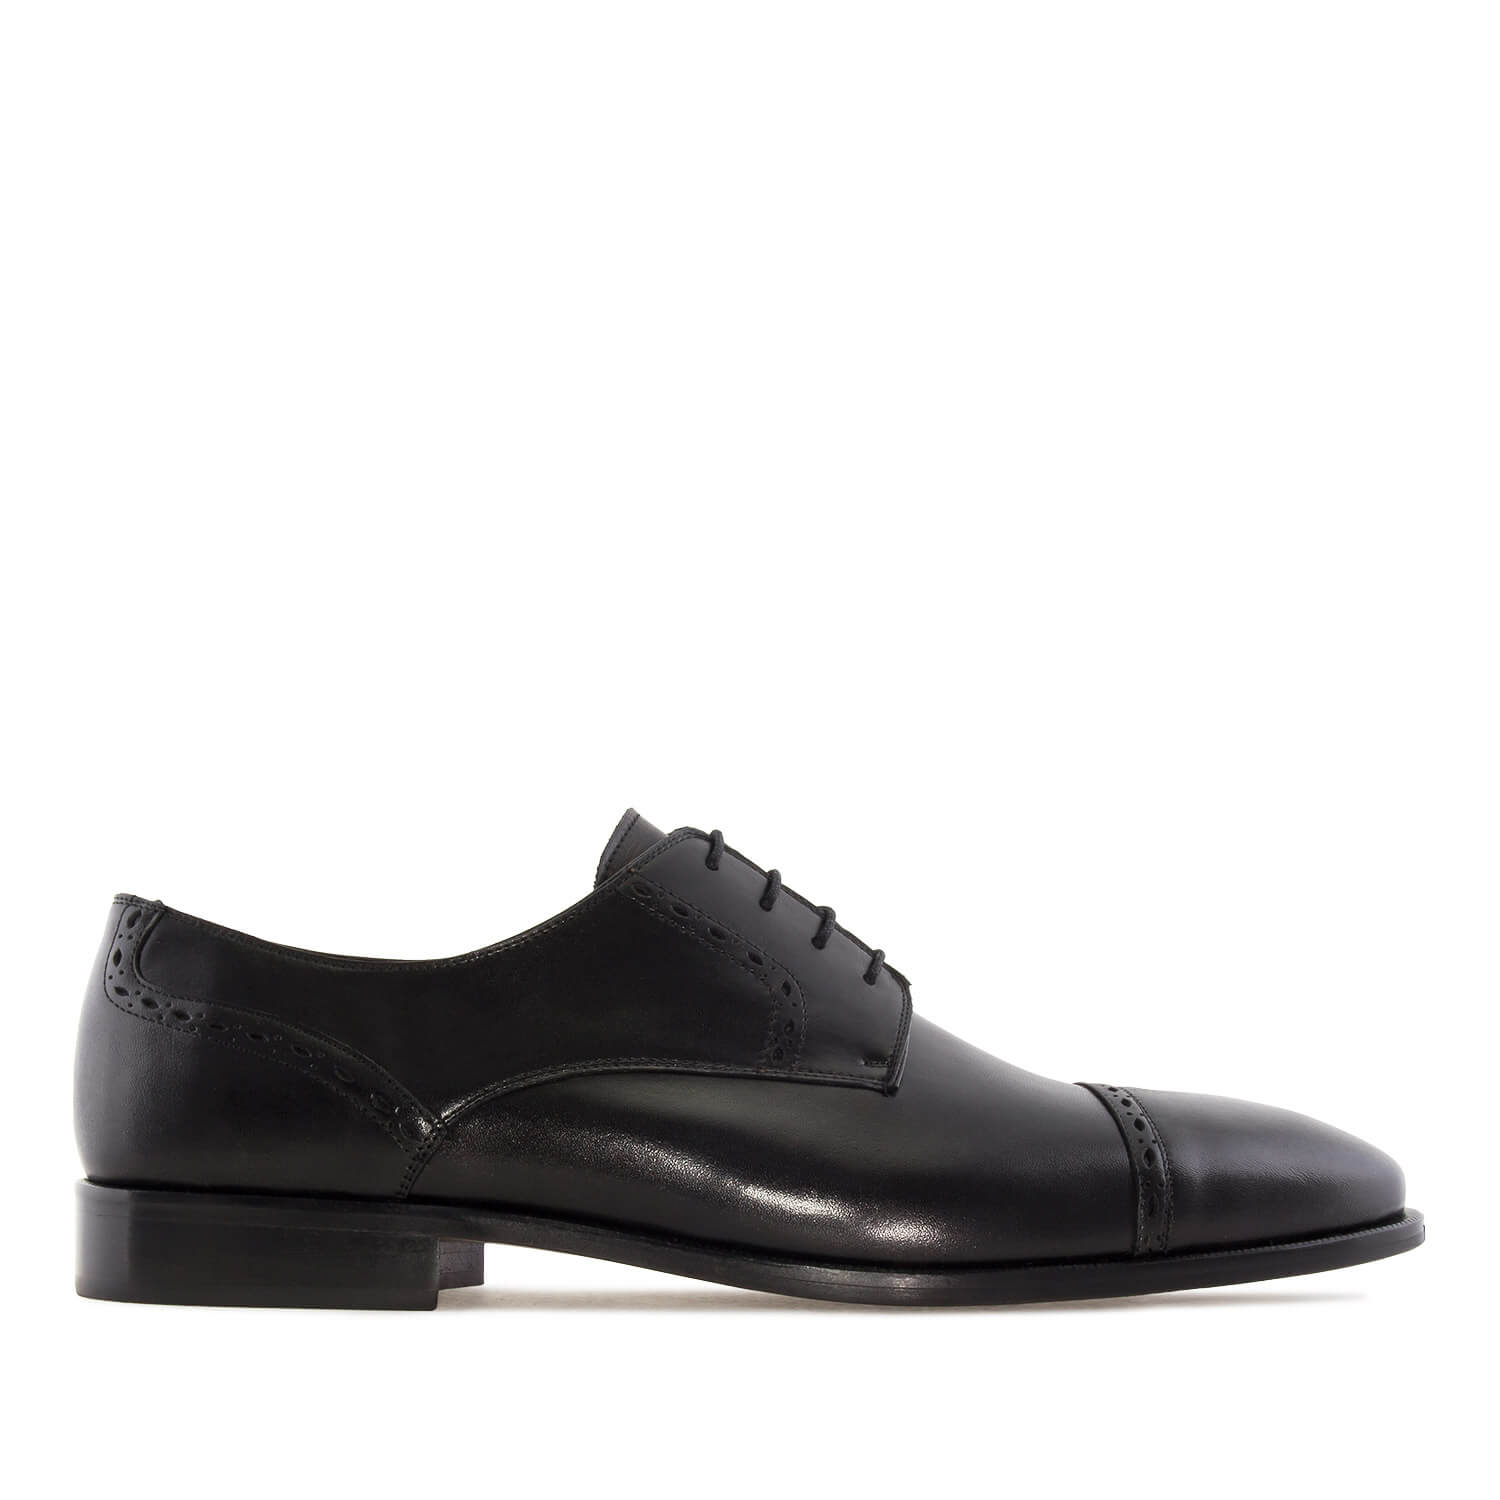 Lace-up Shoes in Black Leather